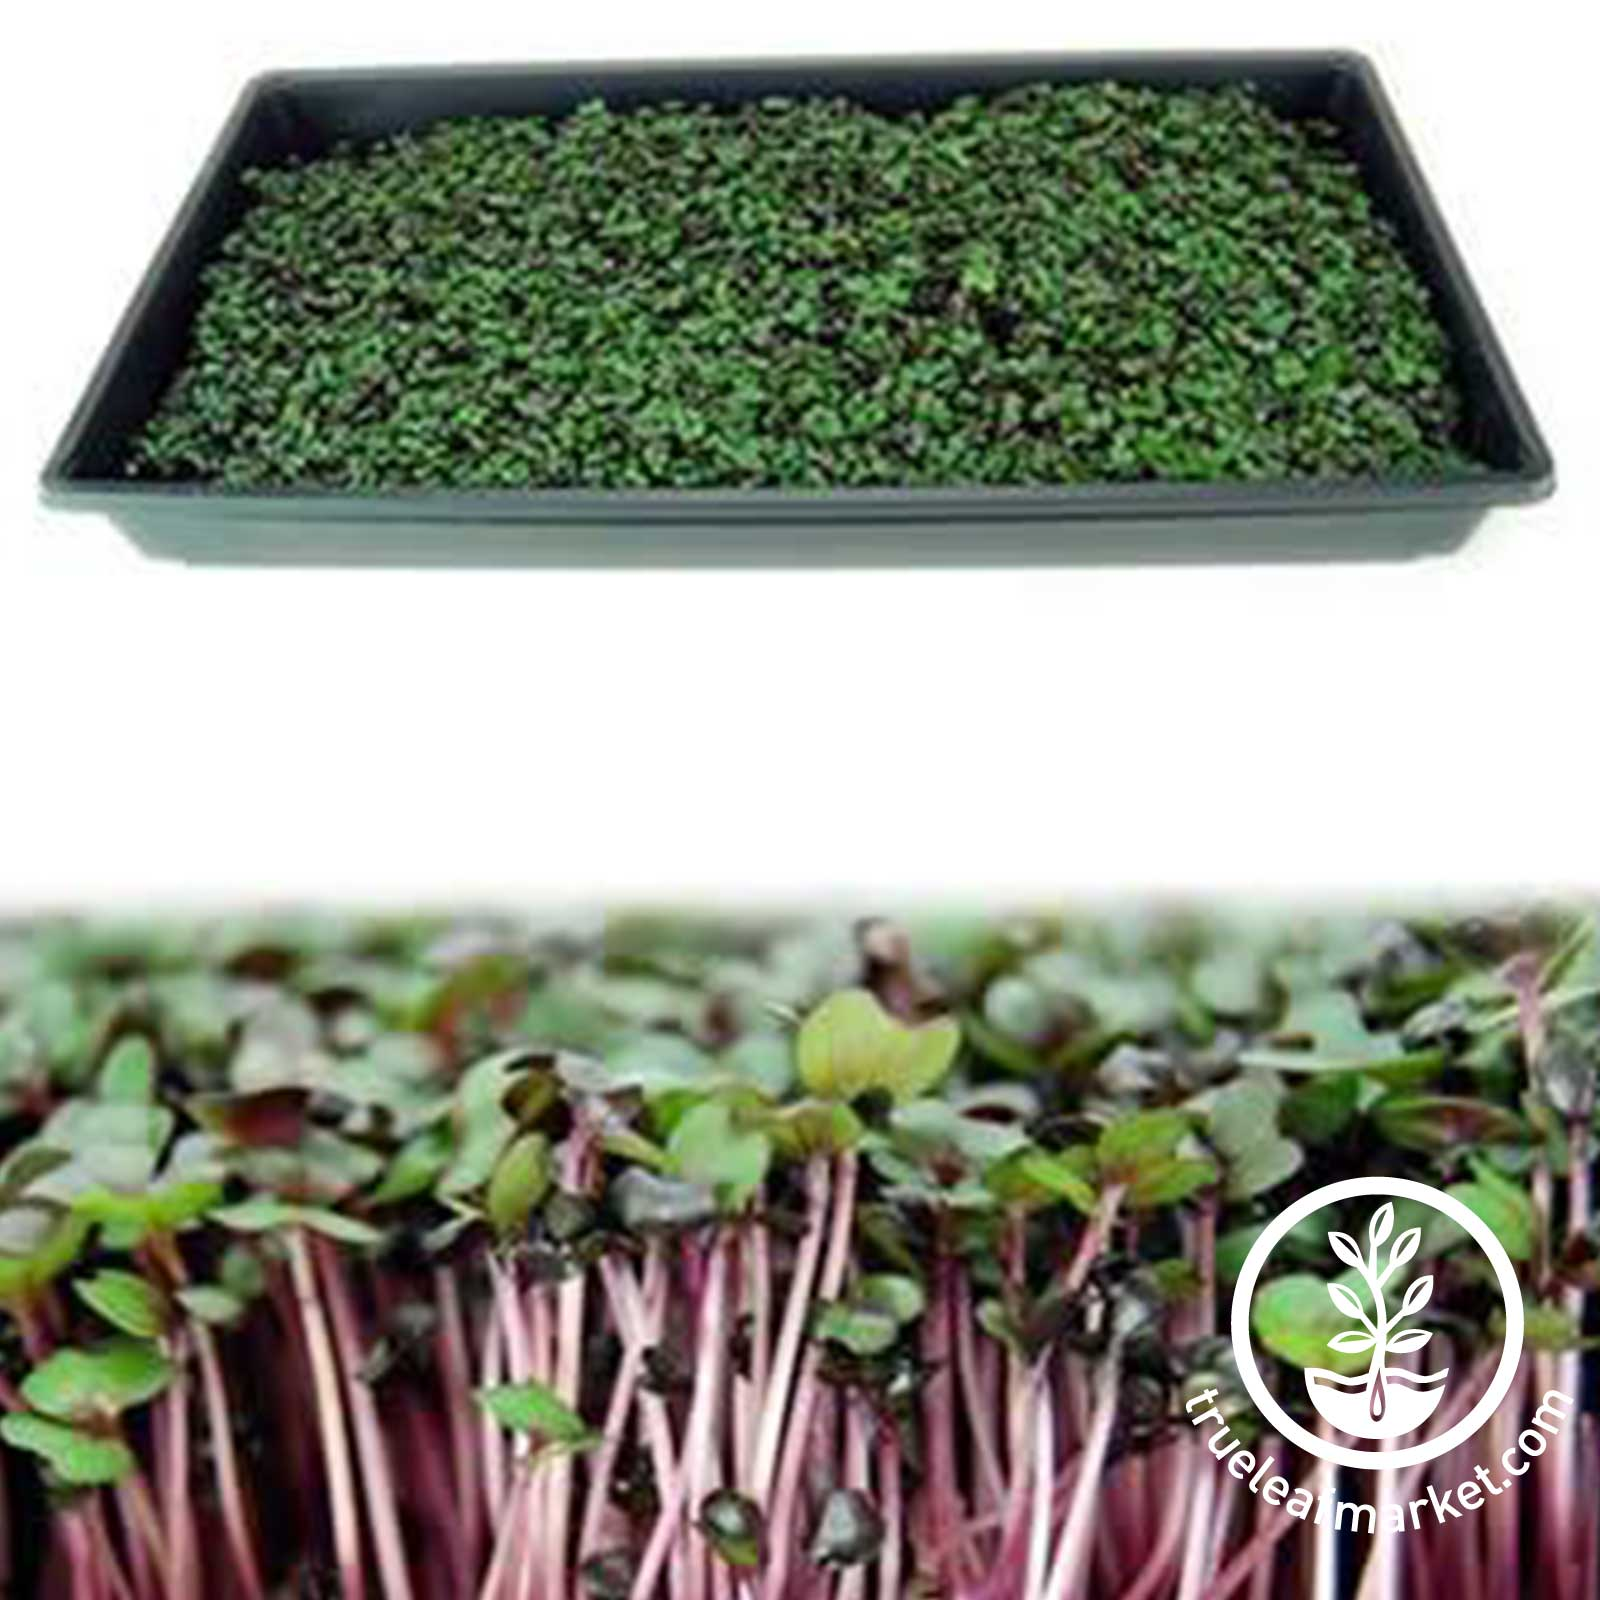 Microgreens - 2 Views